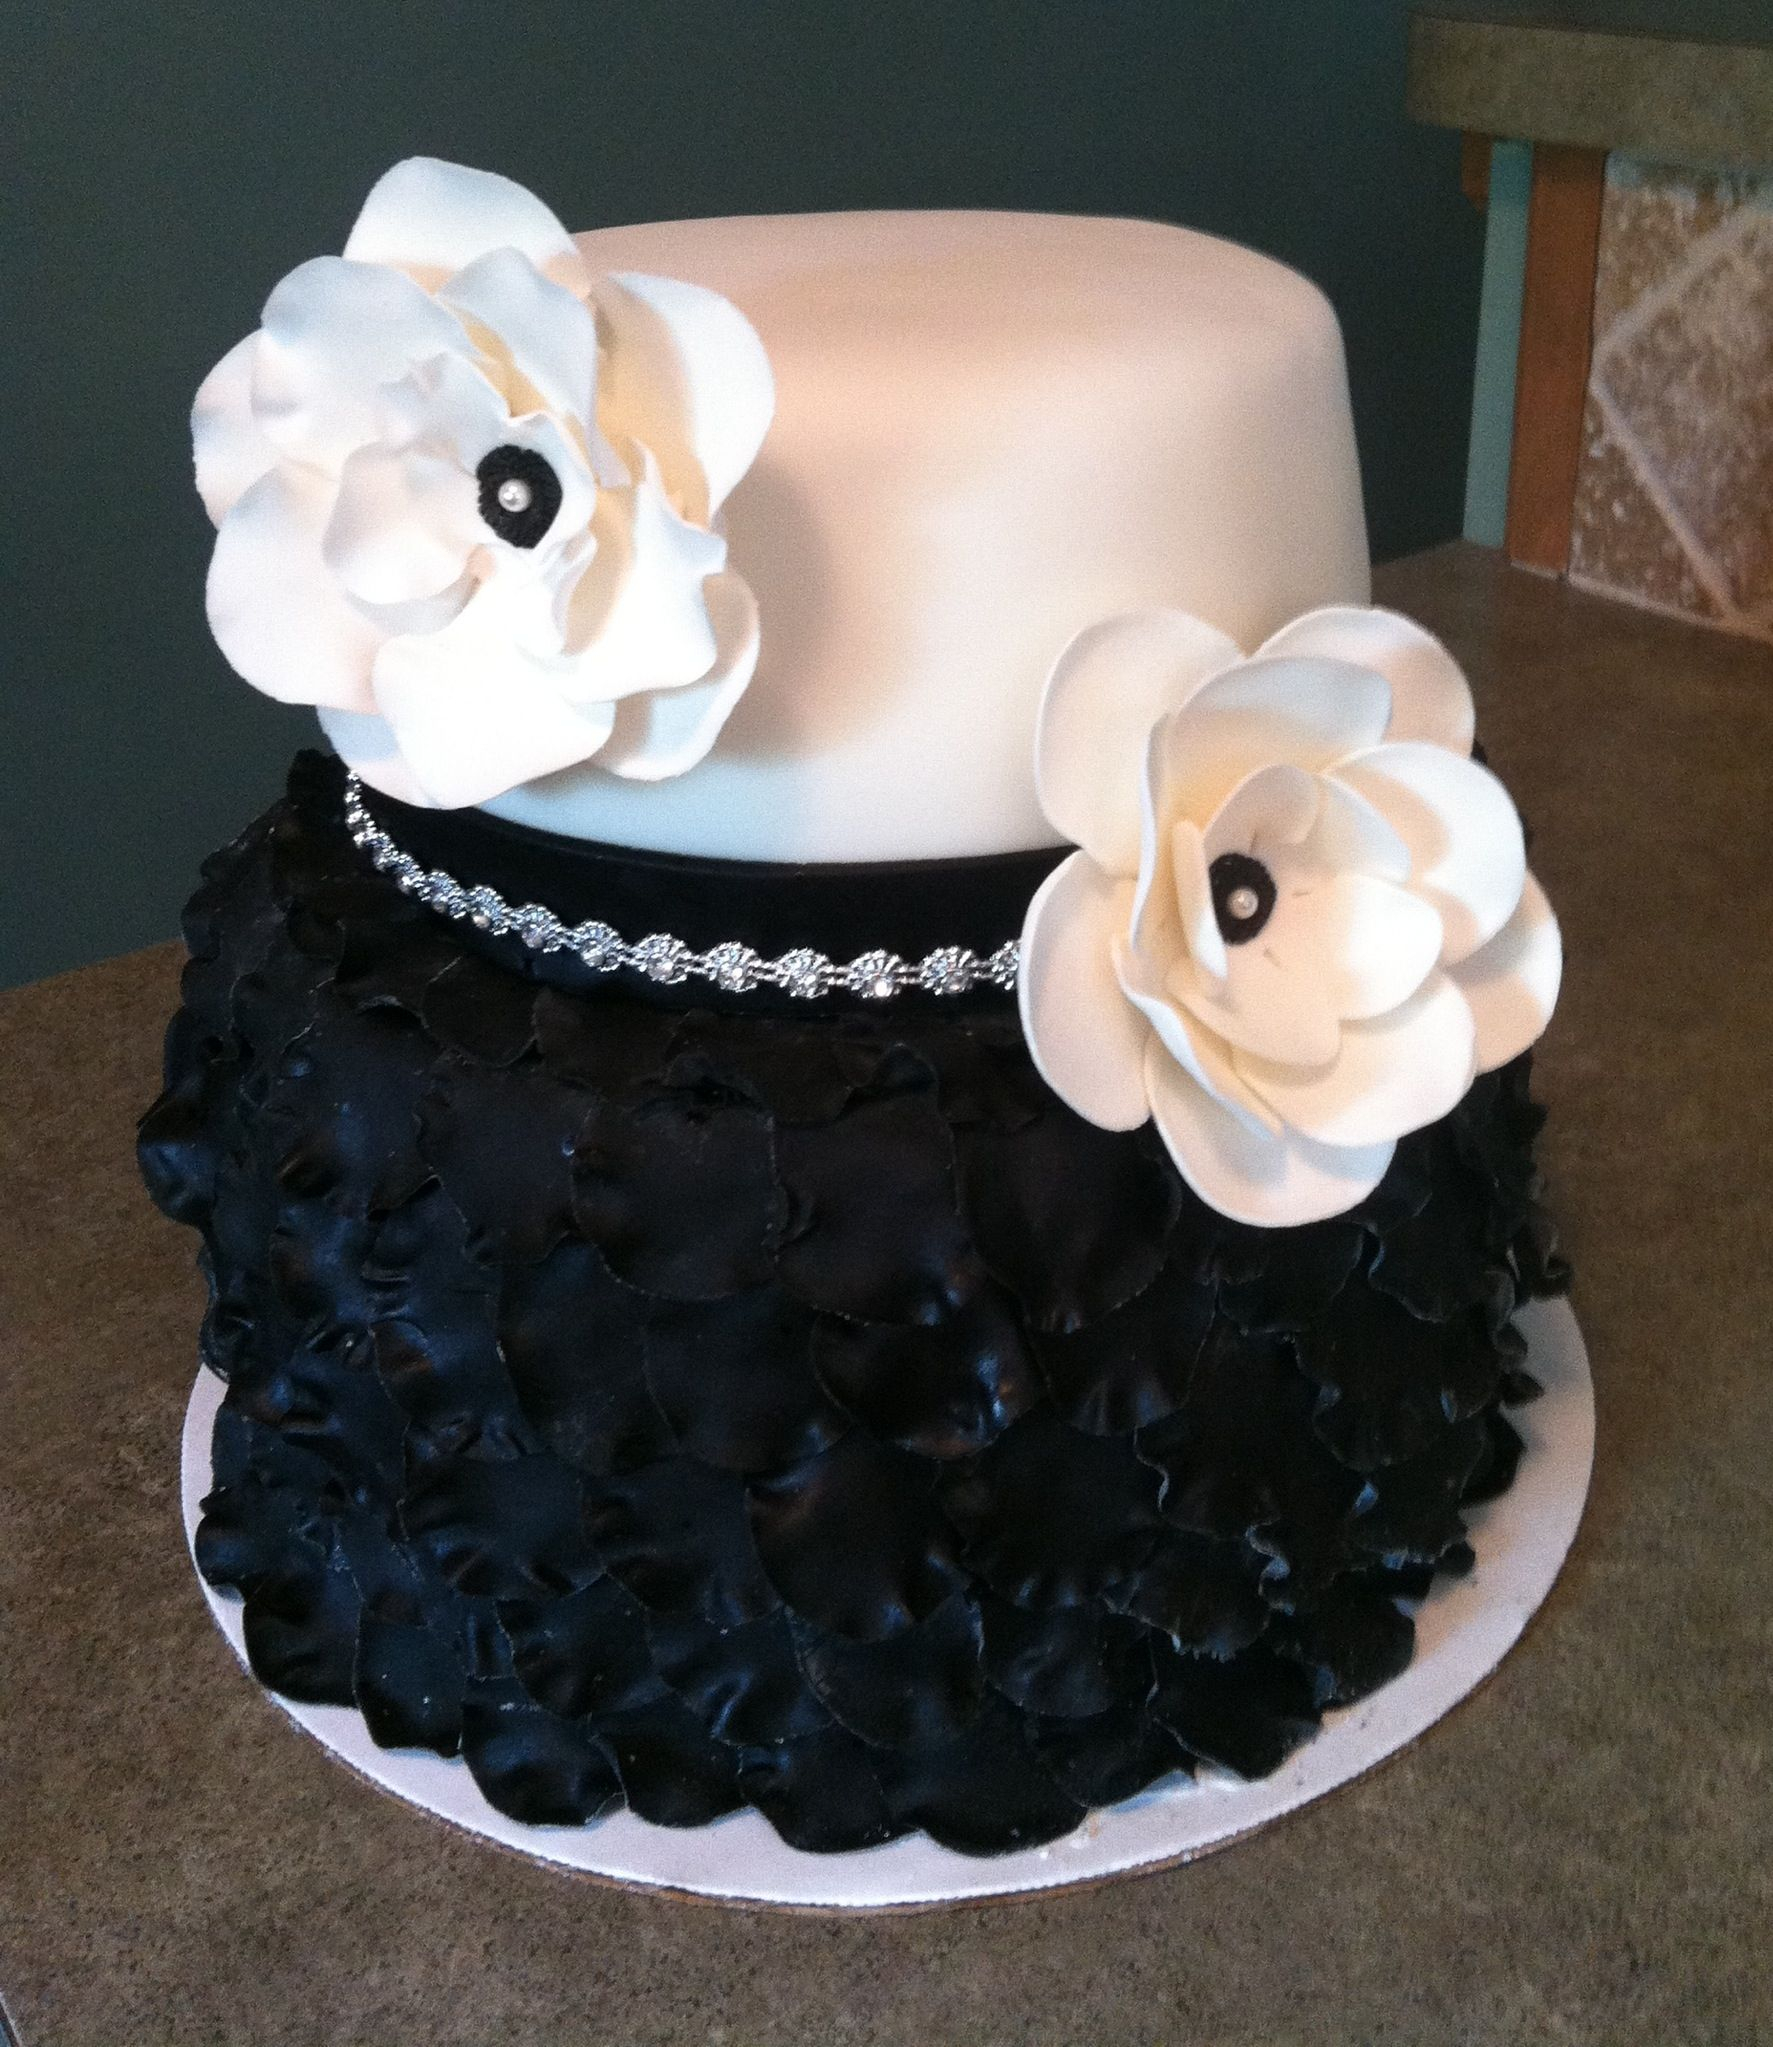 Black And White Birthday Cake Black And White Birthday Cake 2 Tier Petal Cake Two Tier Black